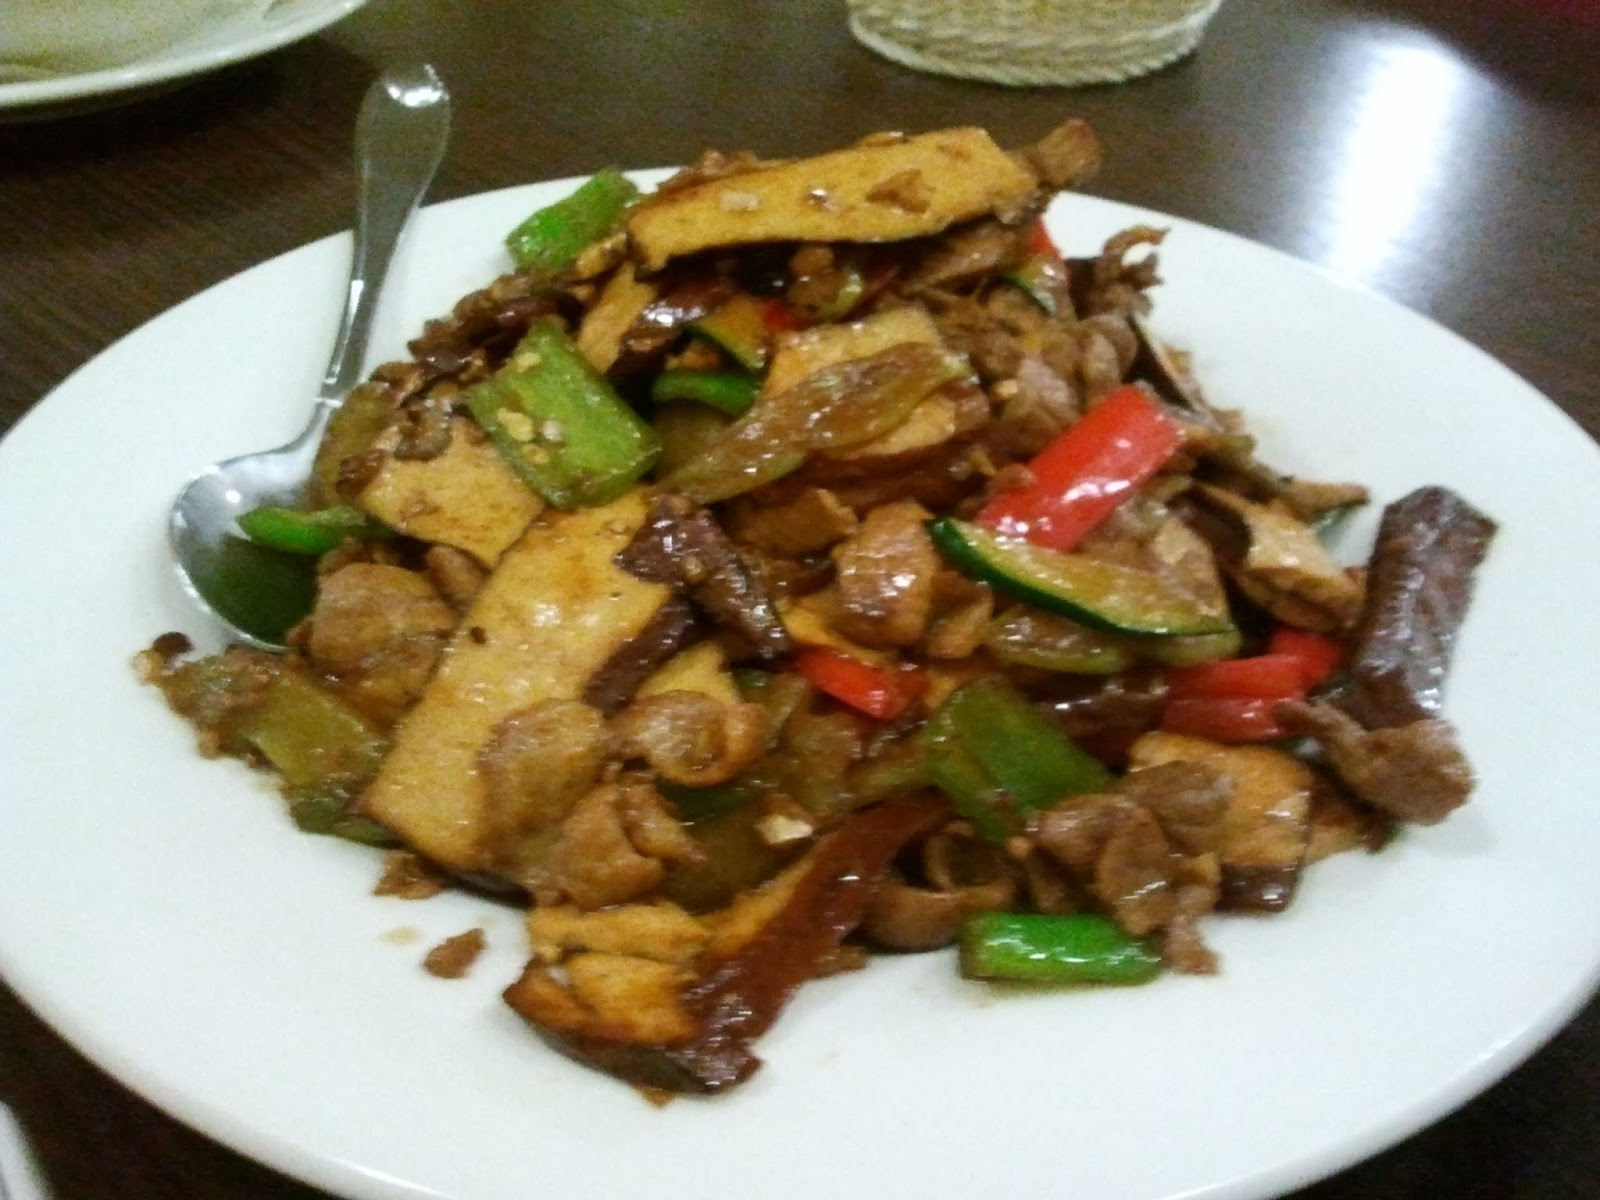 Craving for Food in Germany: Extremely Spicy Hunan Food at